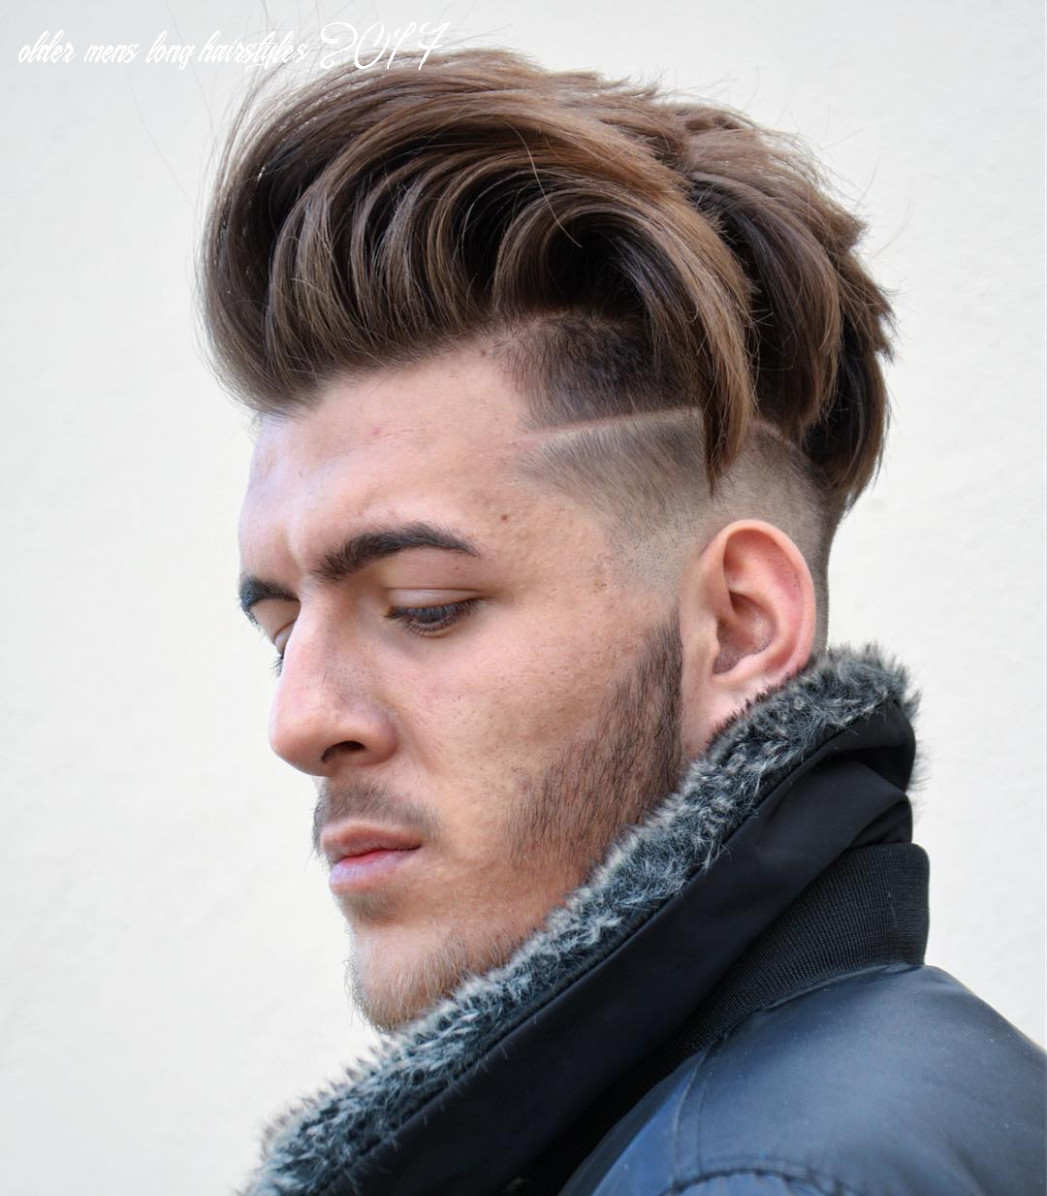 11 Cool Men's Hairstyles + Men's Haircuts For 11